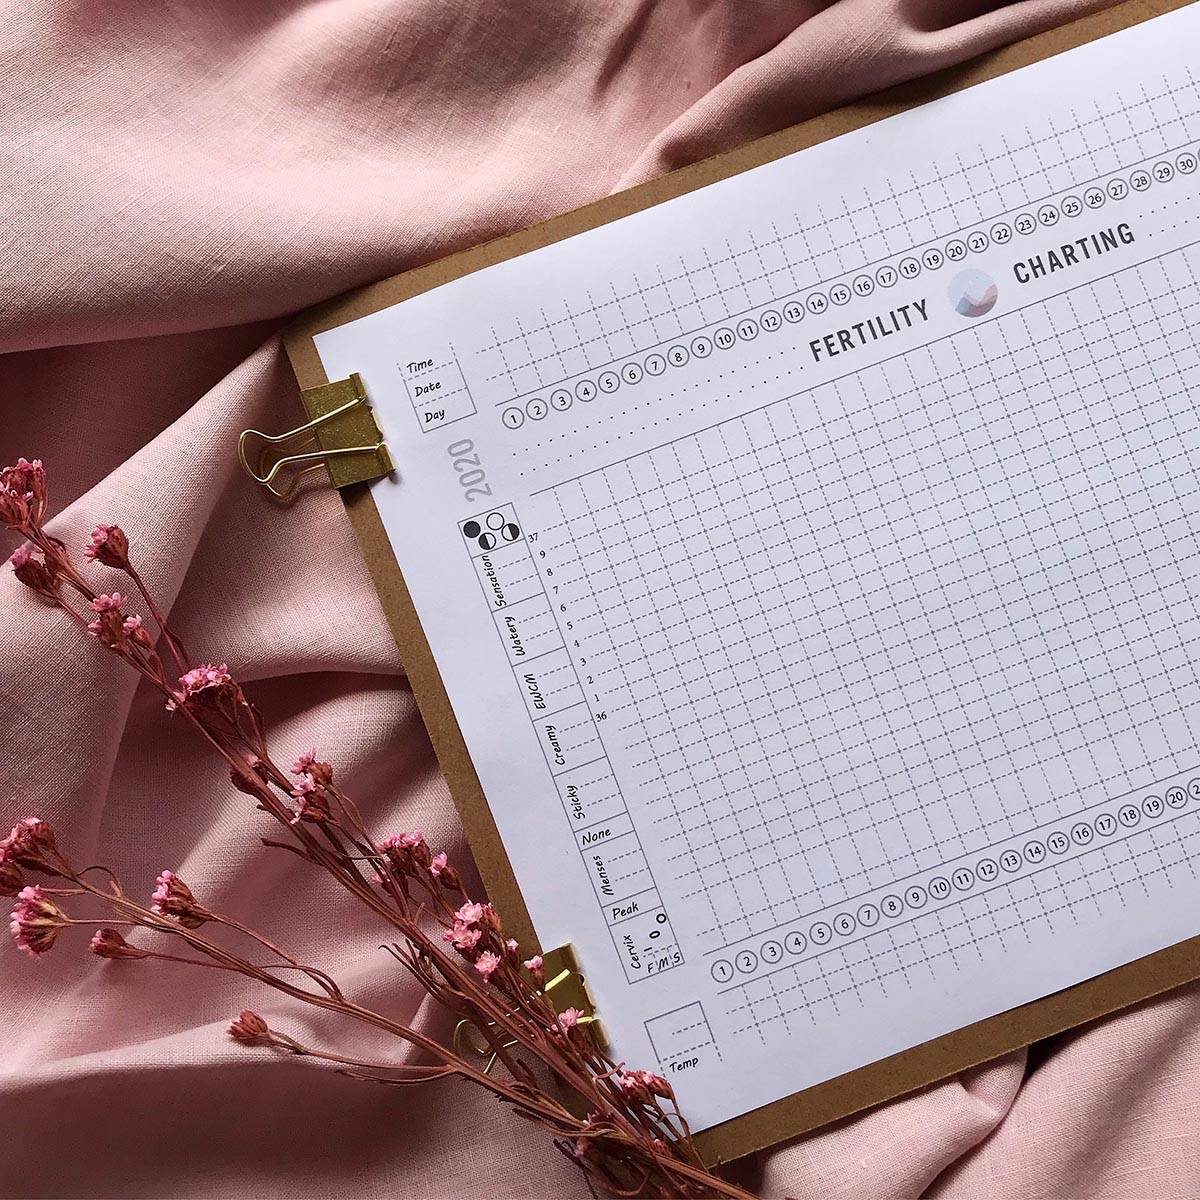 It's just a photo of Inventive Printable Fertility Chart